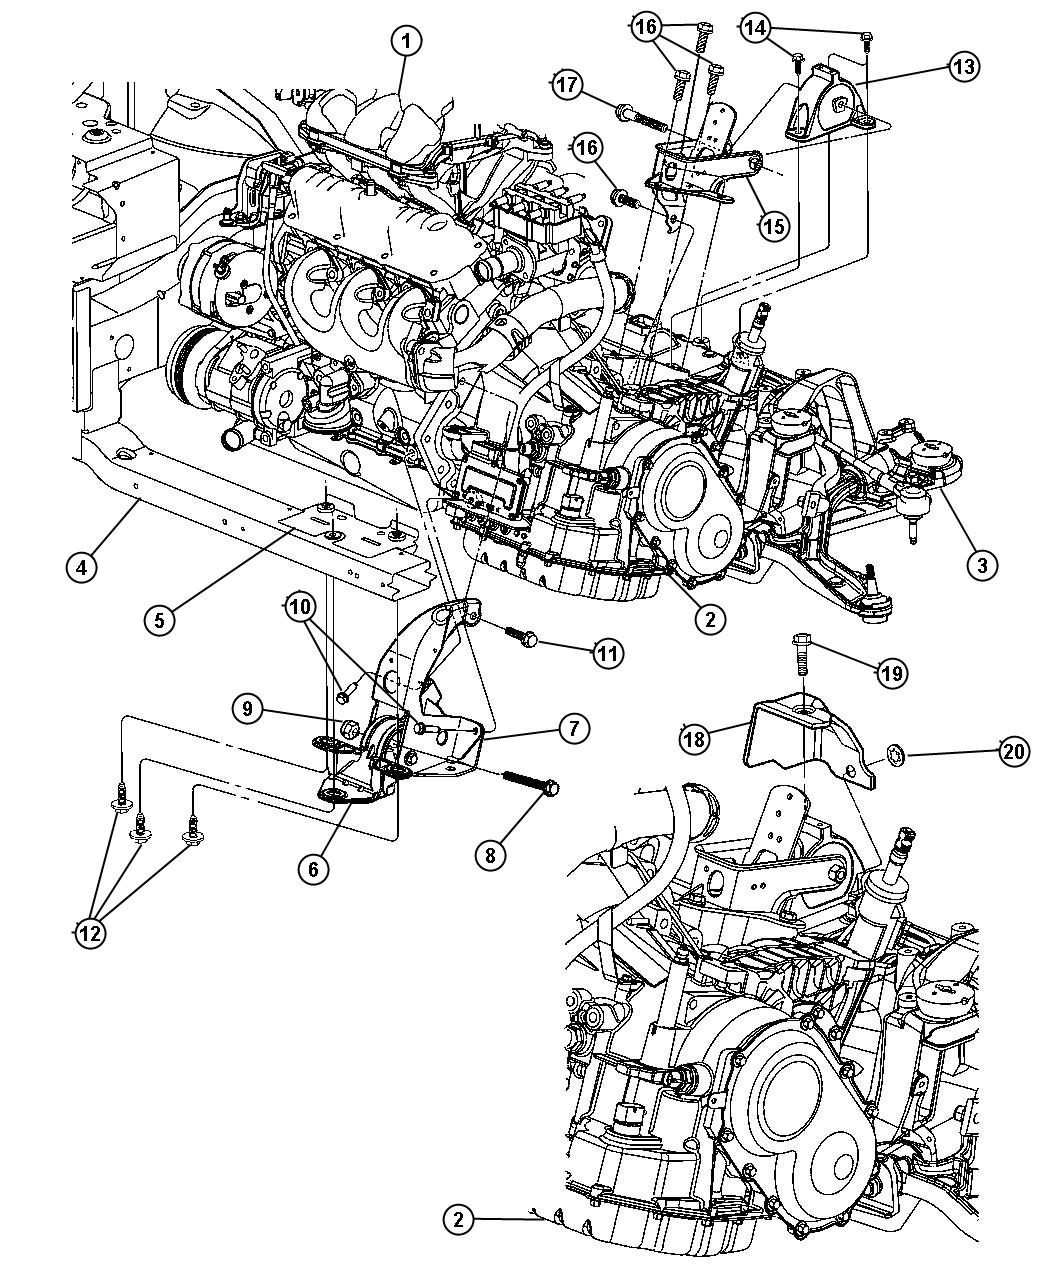 Chrysler Town & Country Bracket. Transmission support